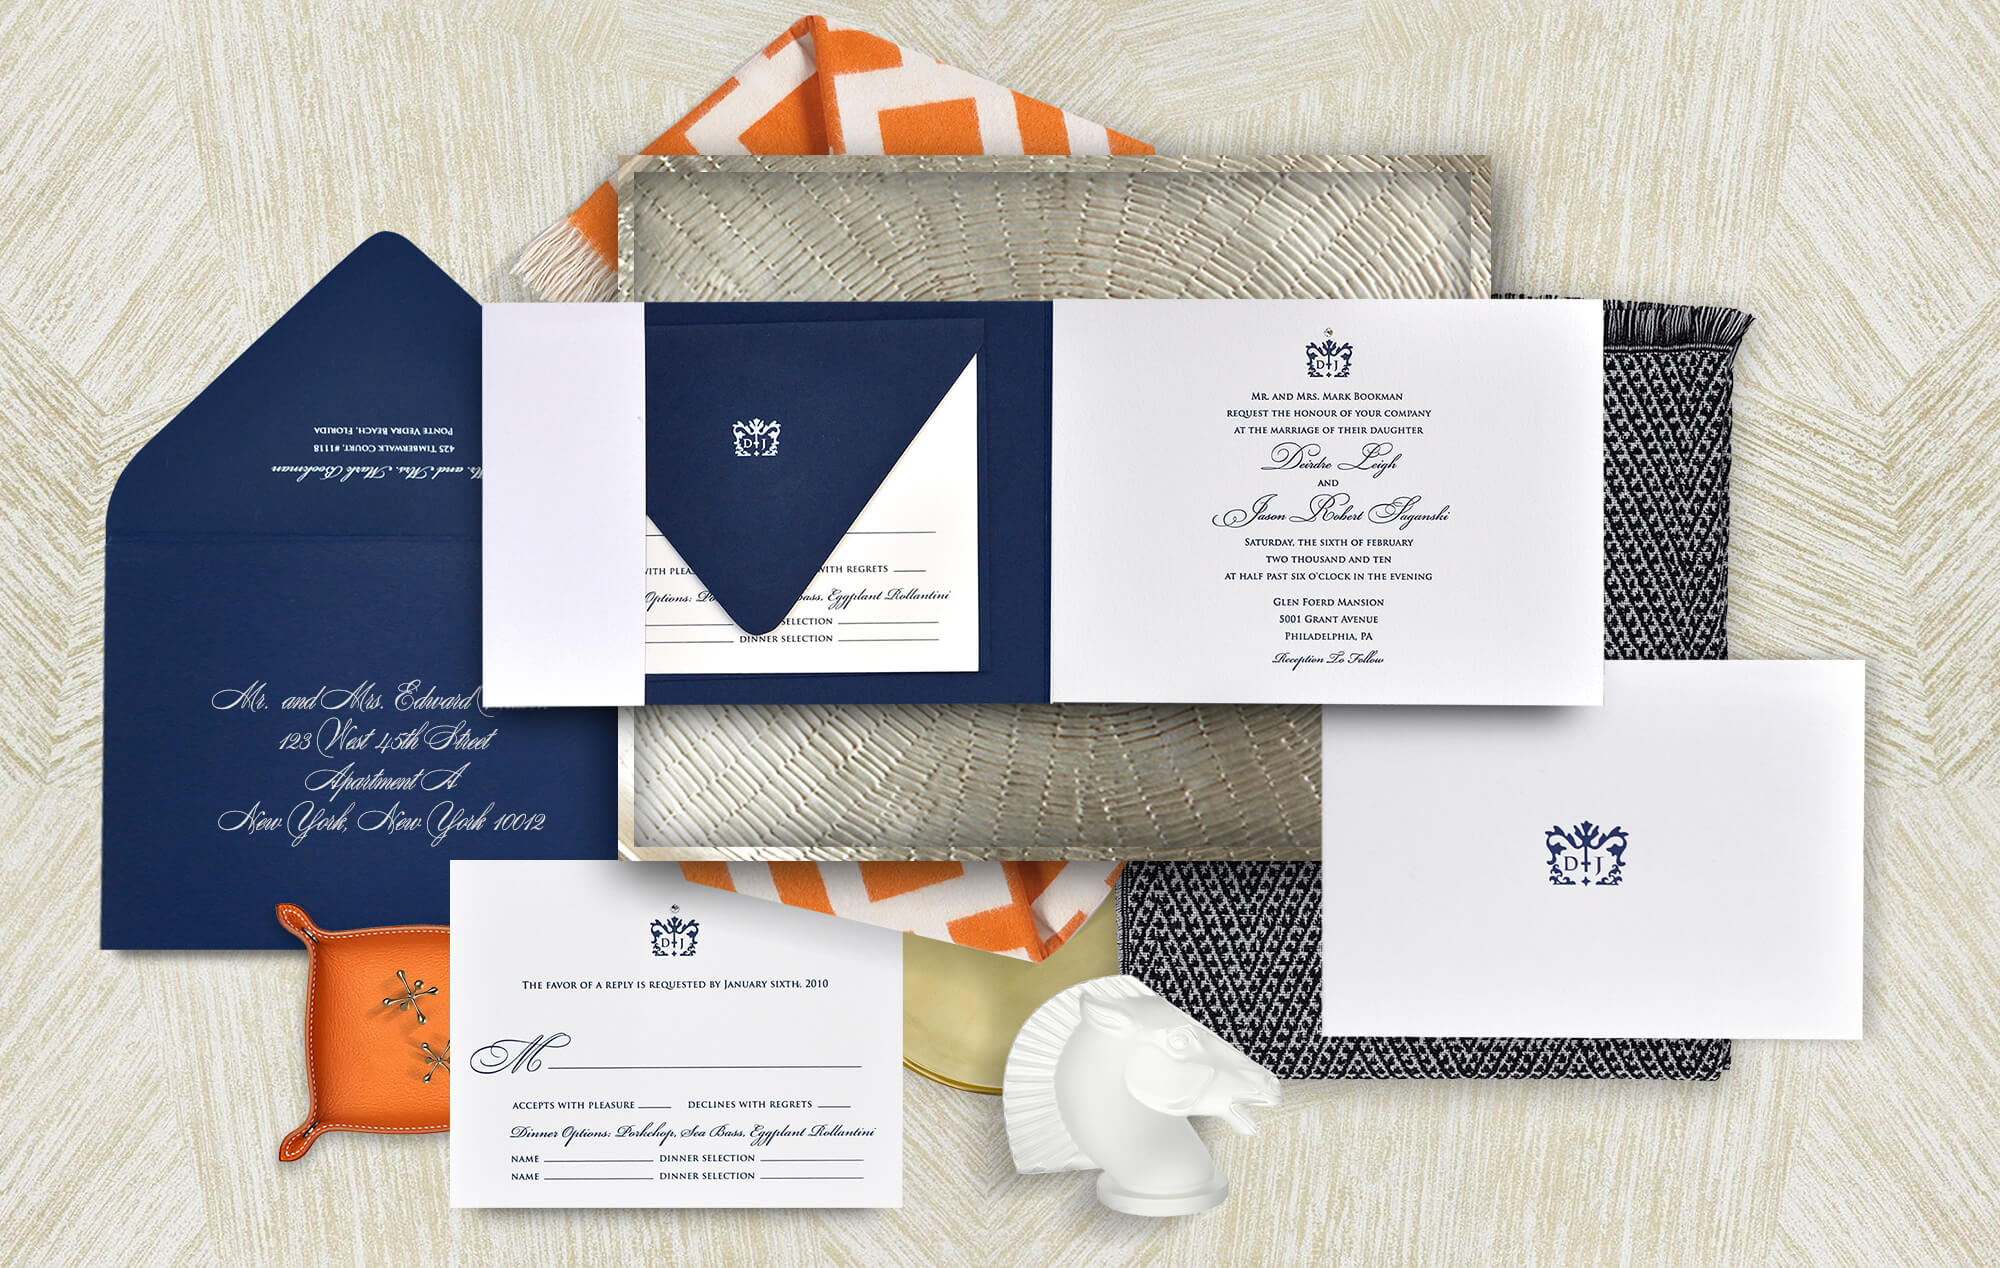 Simple classic navy and white wedding invitation